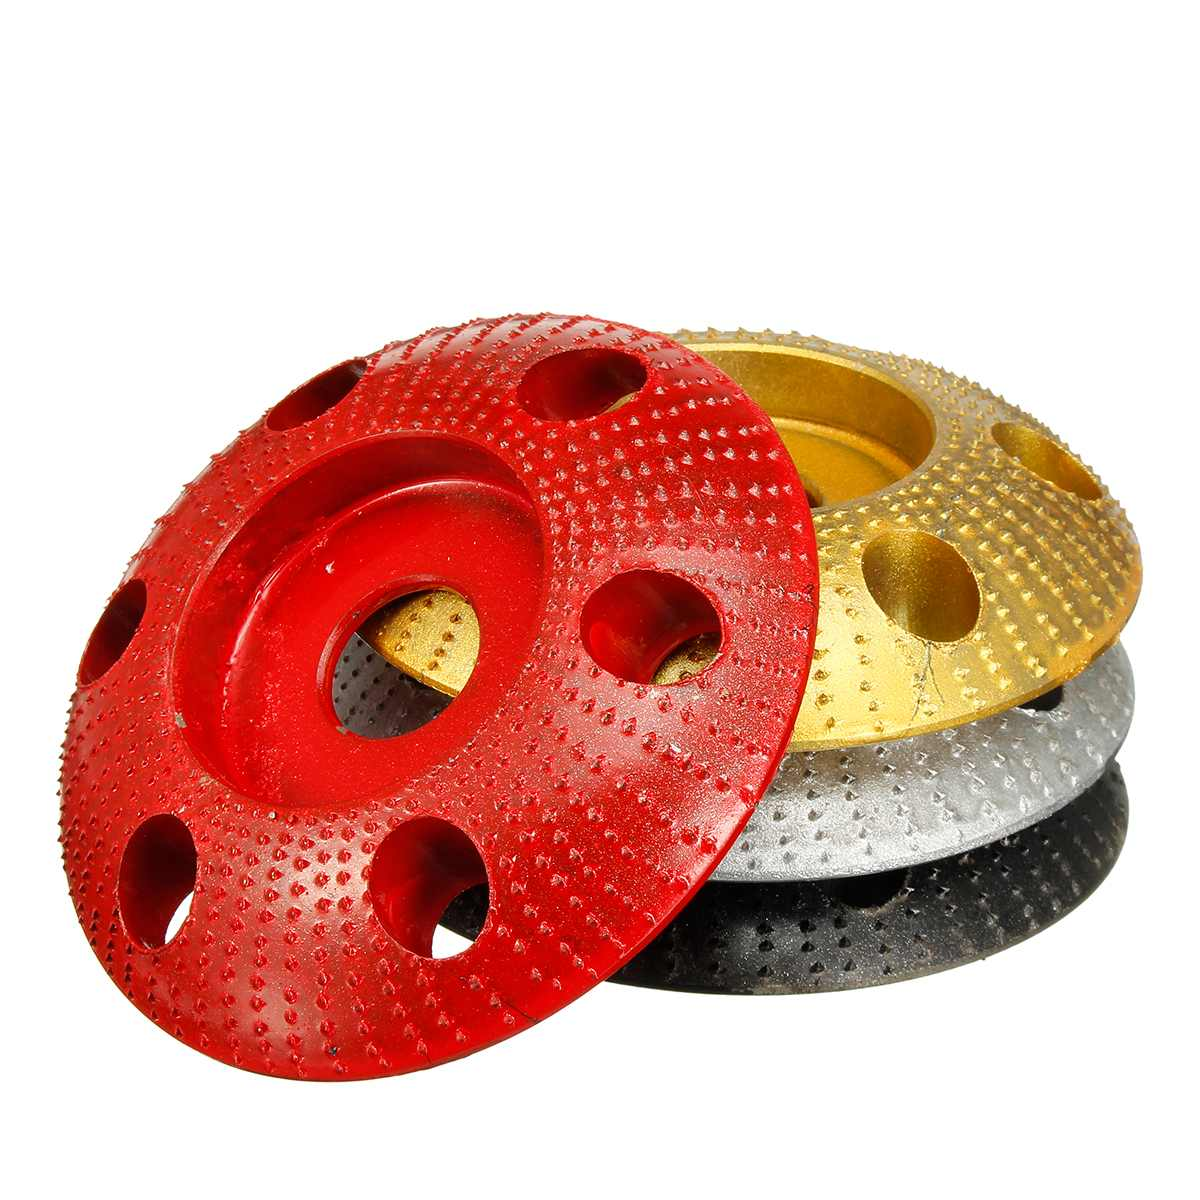 110mm Wood Shaping Disc Round Carving Disc With Hole 22mm Bore Sanding Grinder Wheel For 115 125 Angle Grinder New